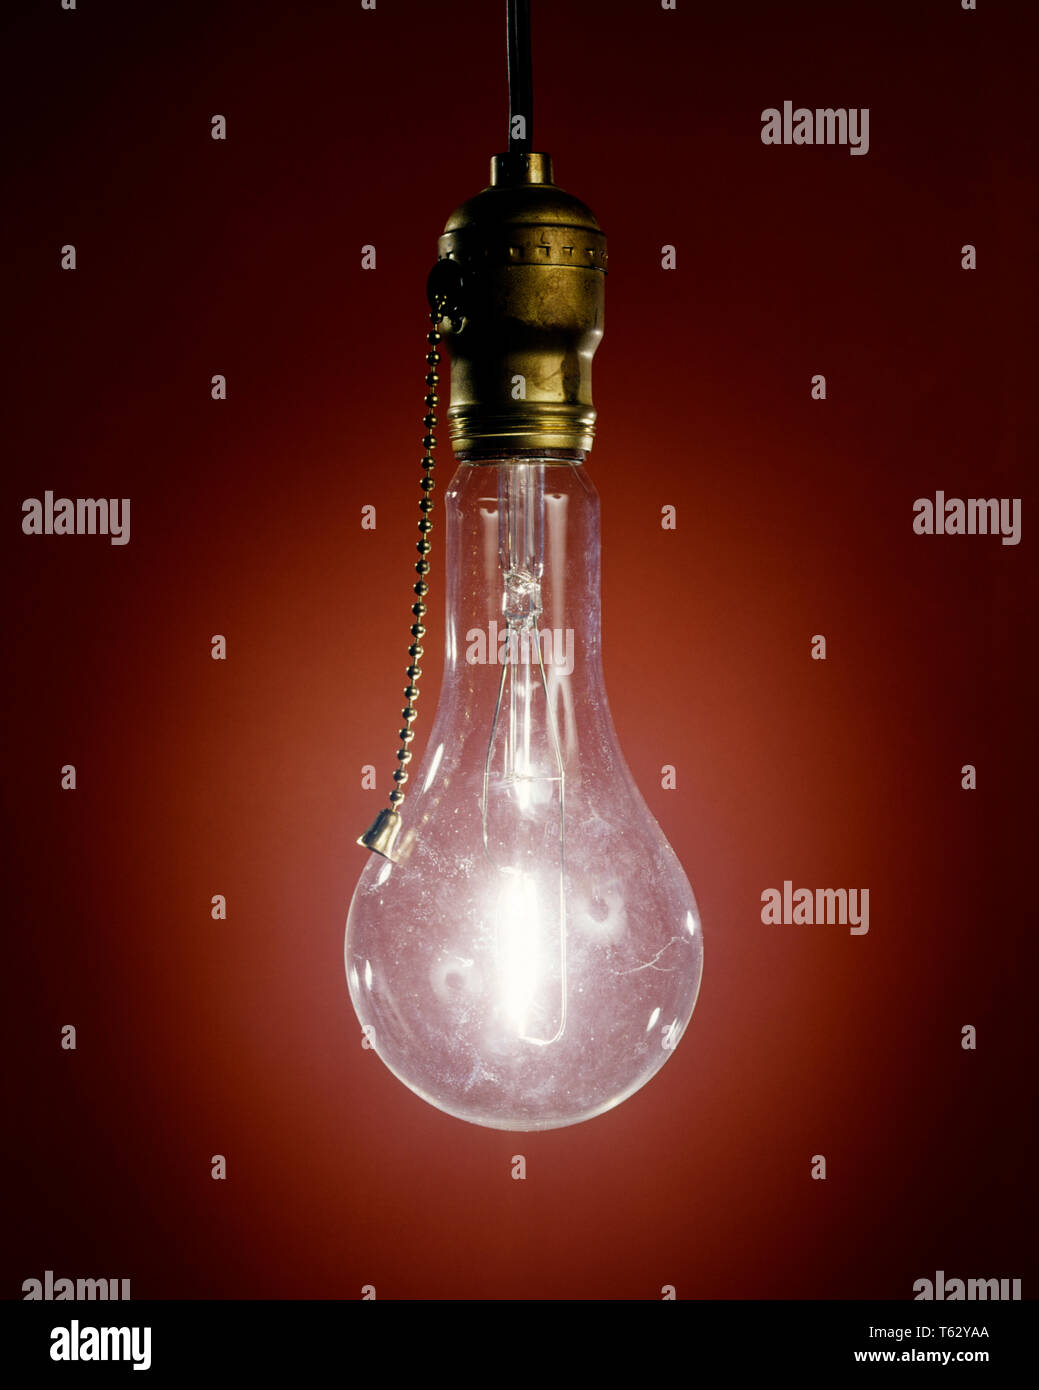 Antique Old Style Clear Glass Bare Light Bulb Hanging From Pull Chain Brass Socket Filament Is Glowing Incandescent Light Ks4924 Har001 Hars Old Fashioned Stock Photo Alamy